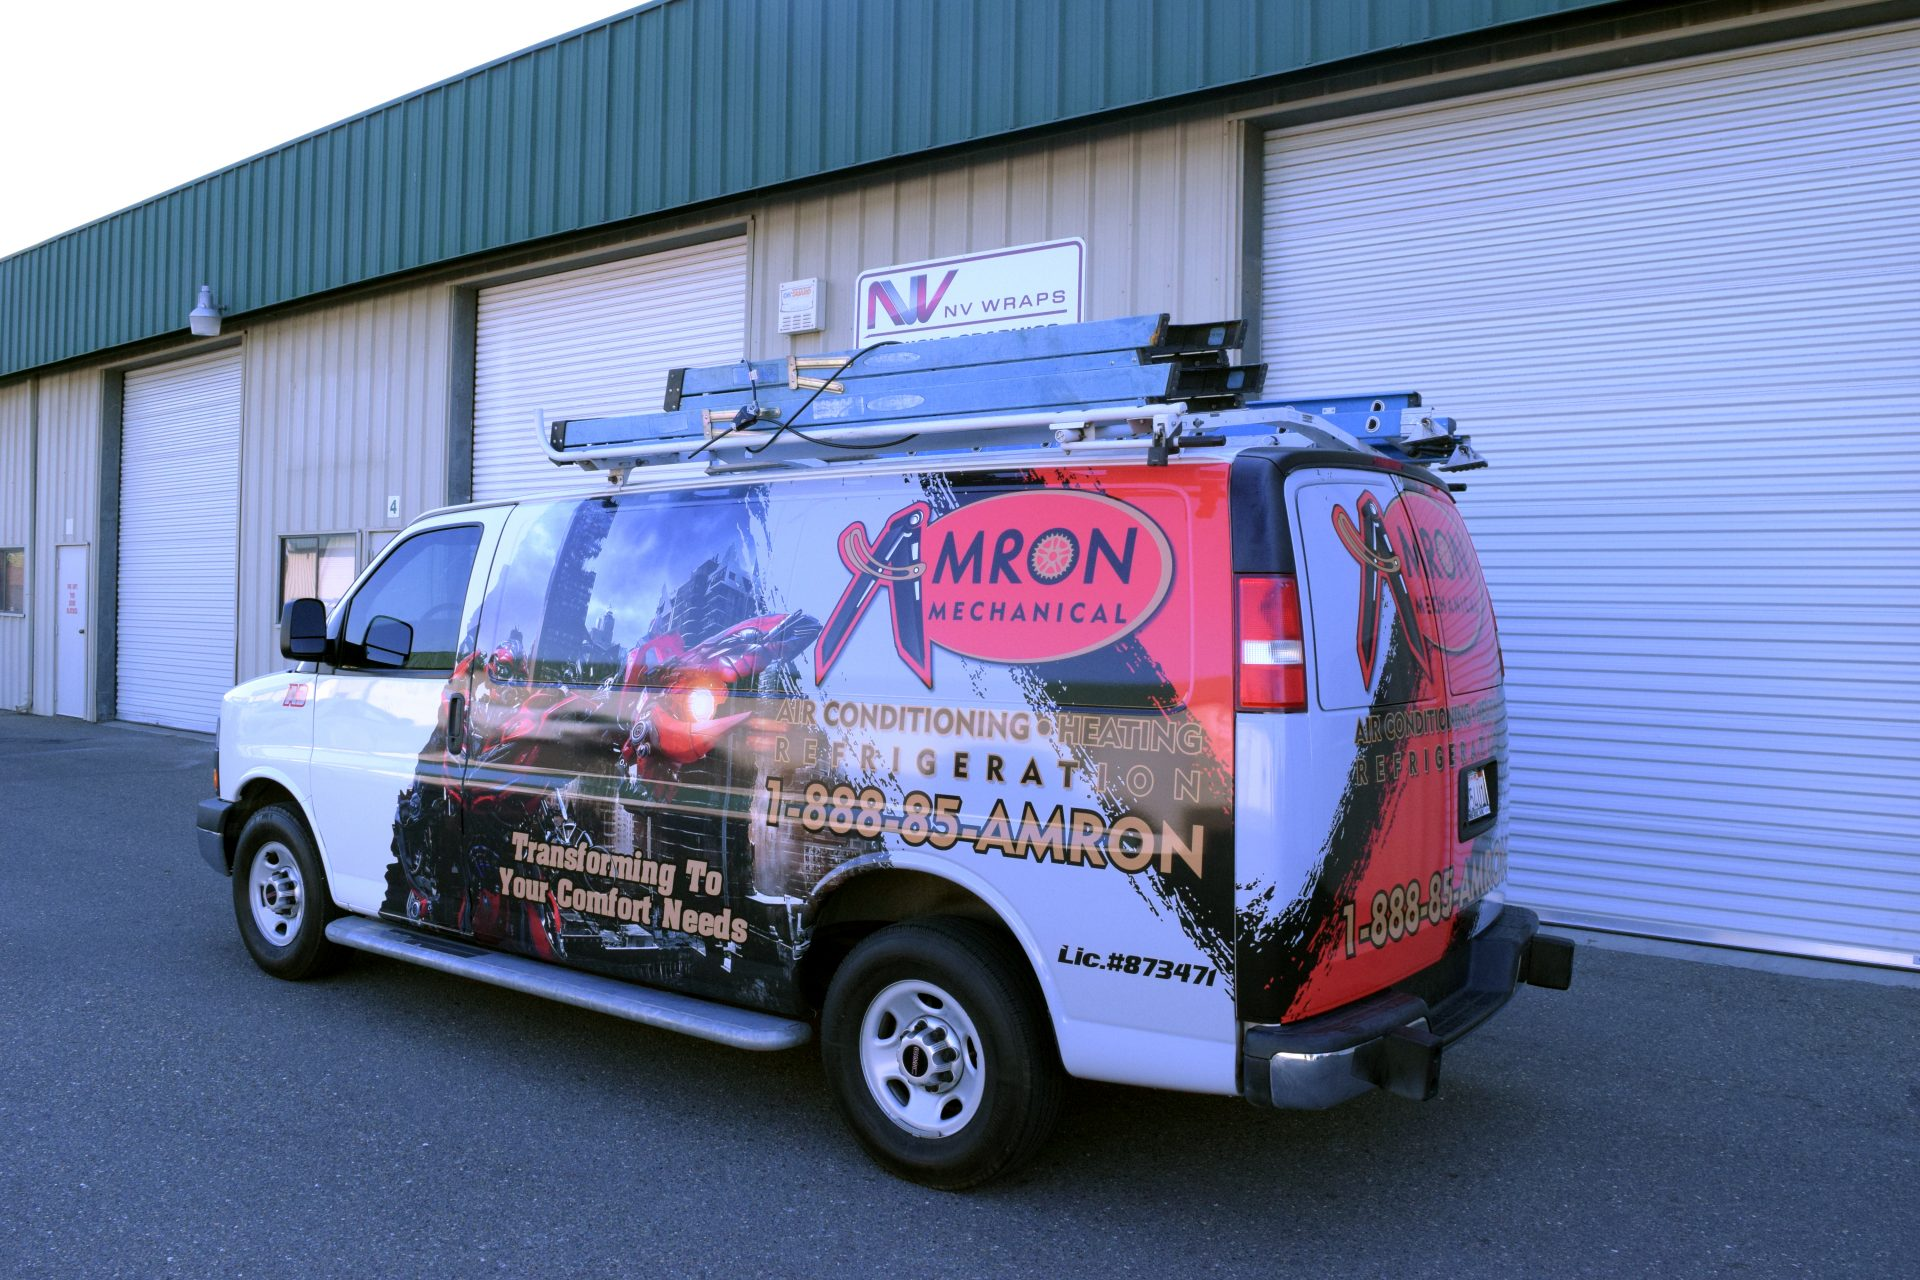 Nv Wraps Commercial Vehicle Wraps